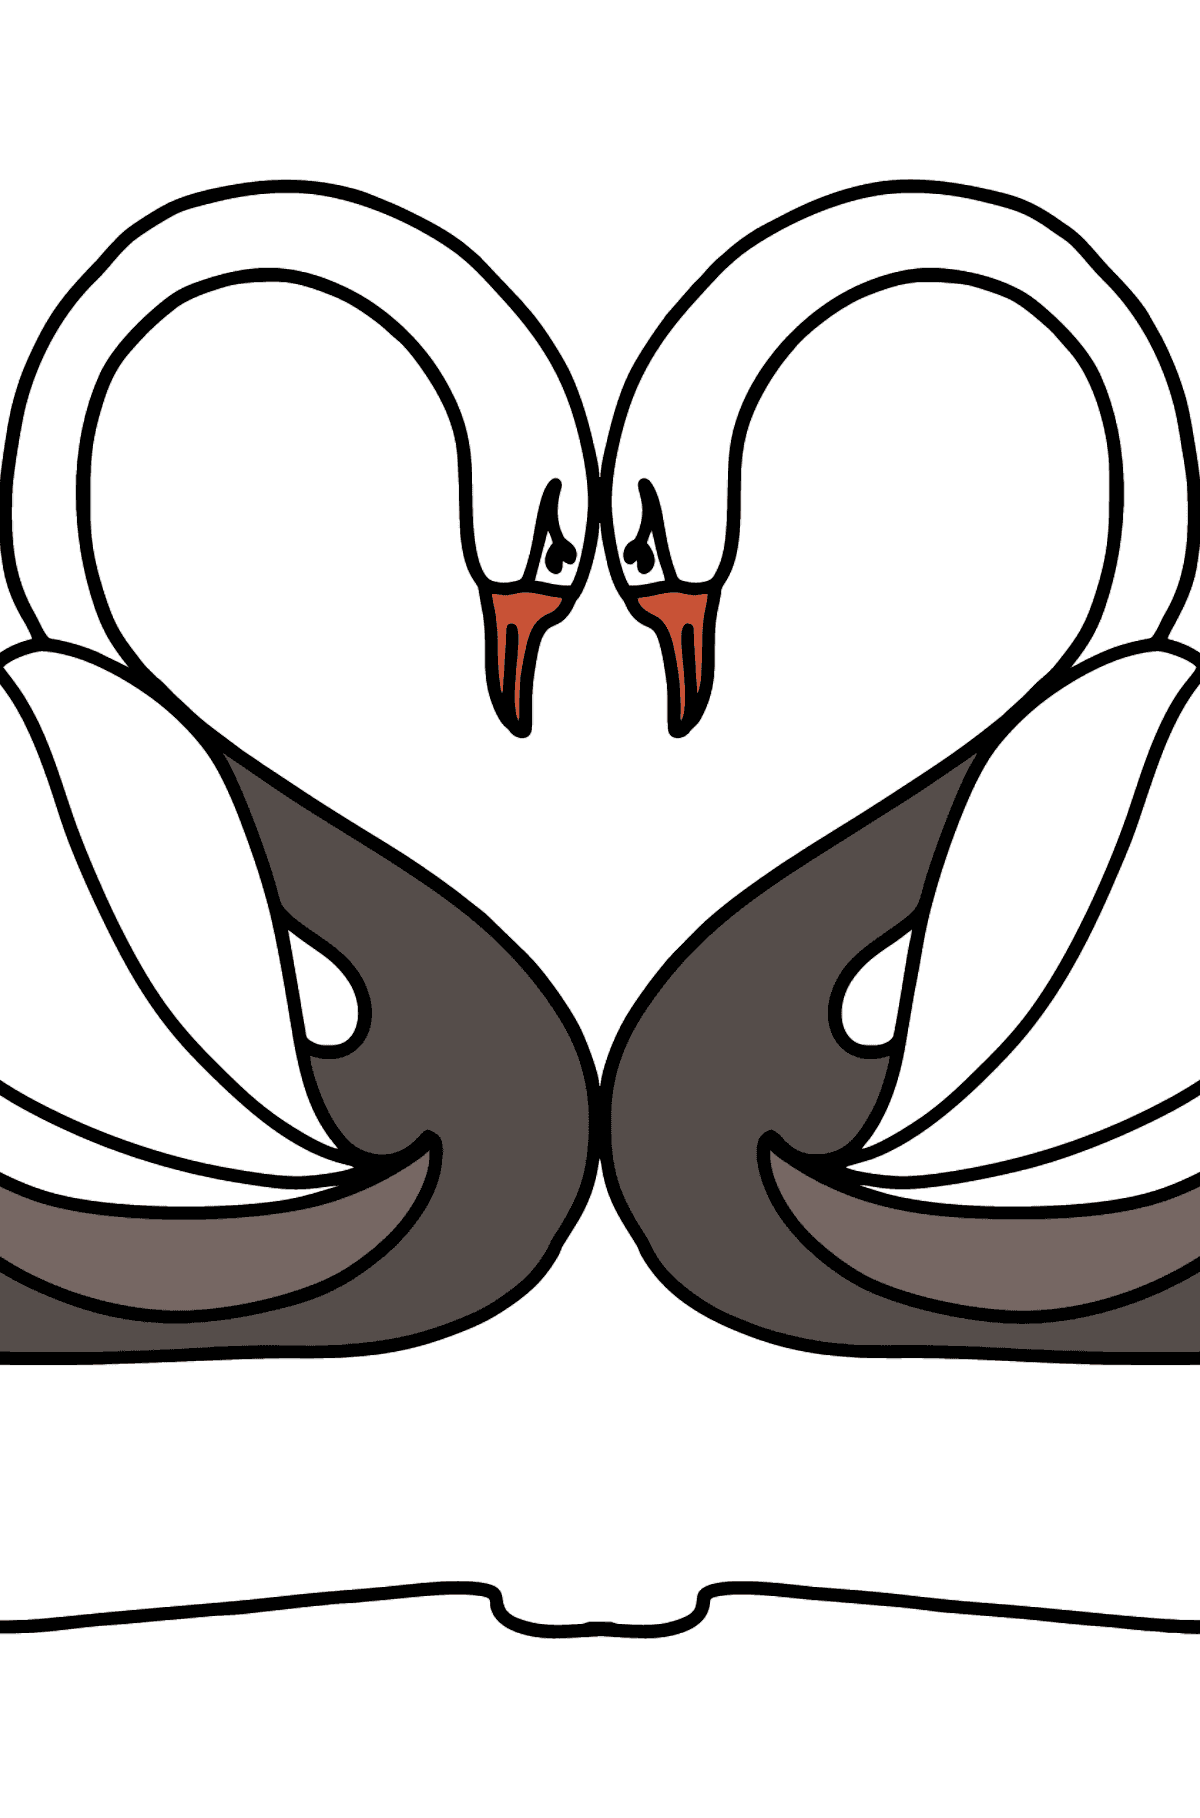 Black Swans coloring page - Coloring Pages for Kids